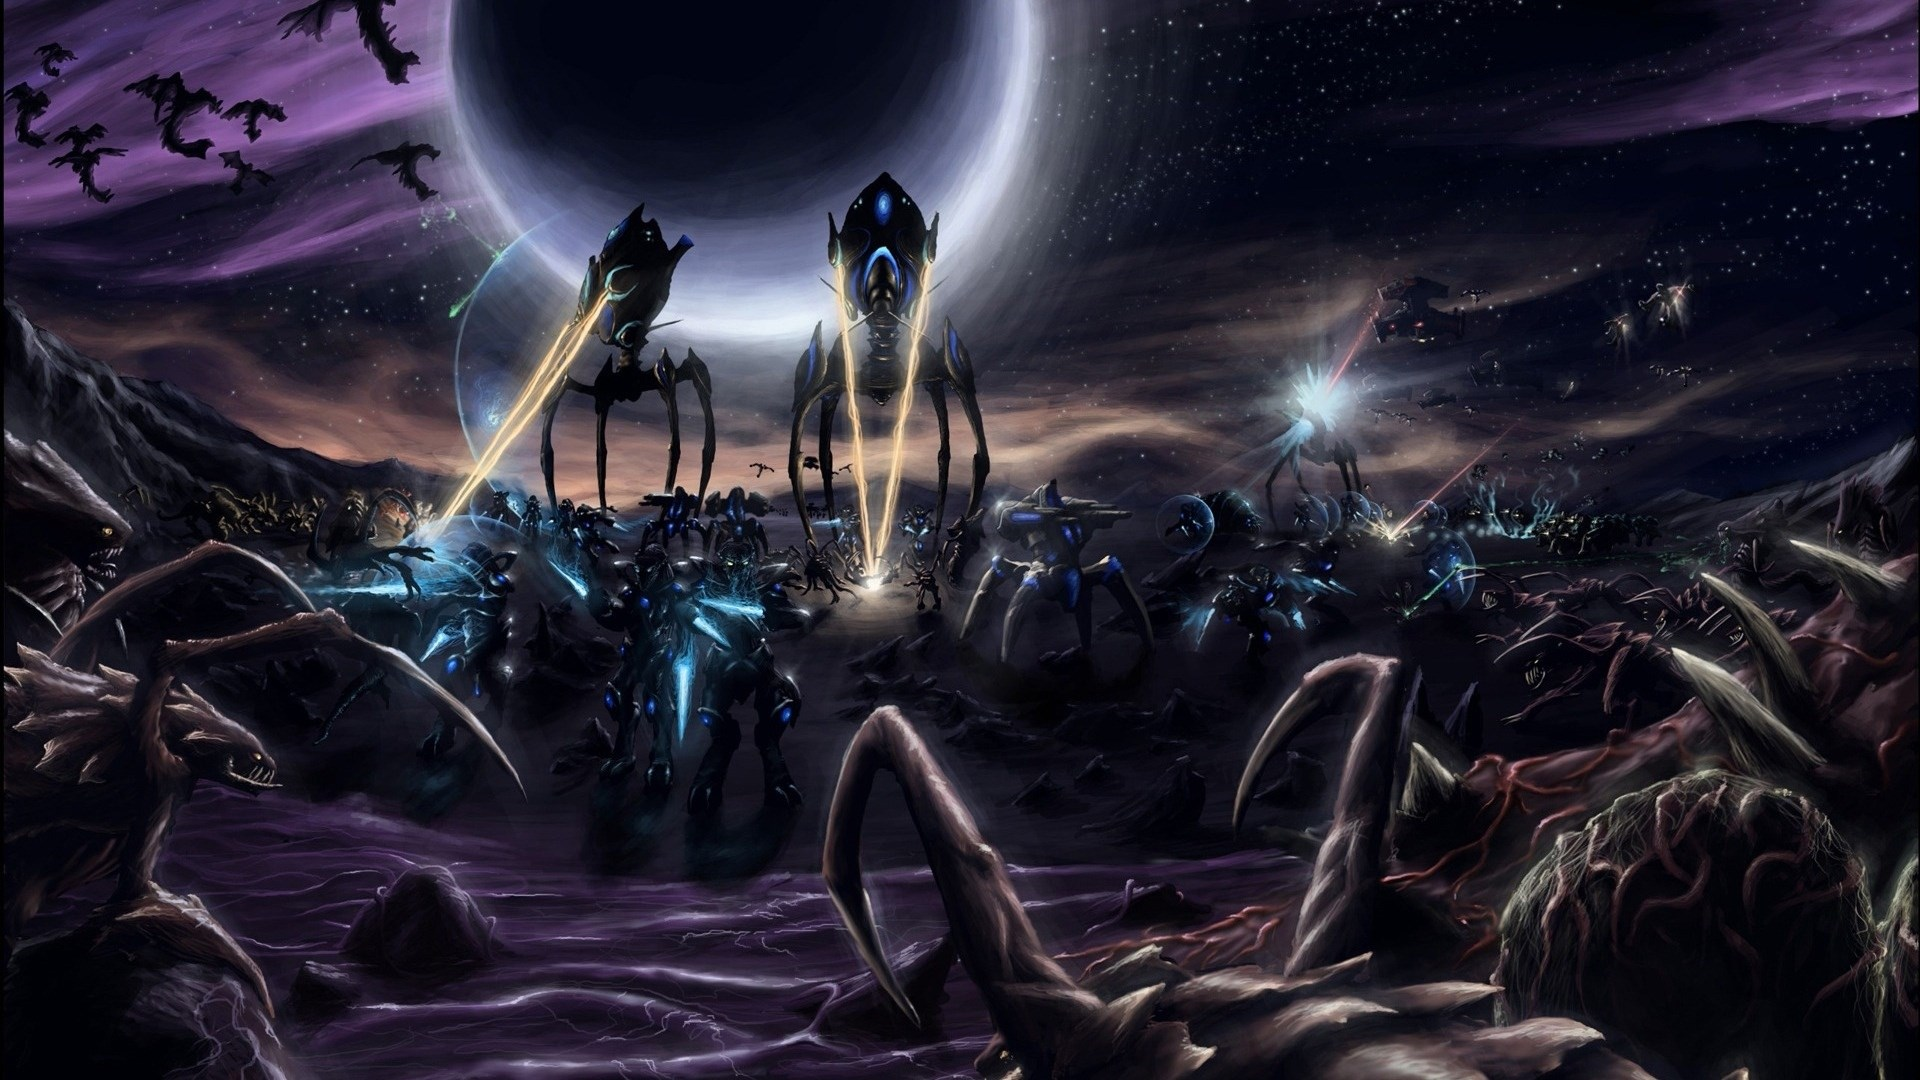 1920x1080-px-free-high-resolution-starcraft-by-Olivia-Sinclair-for-pocketfullofgrace-co-wallpaper-wp360848